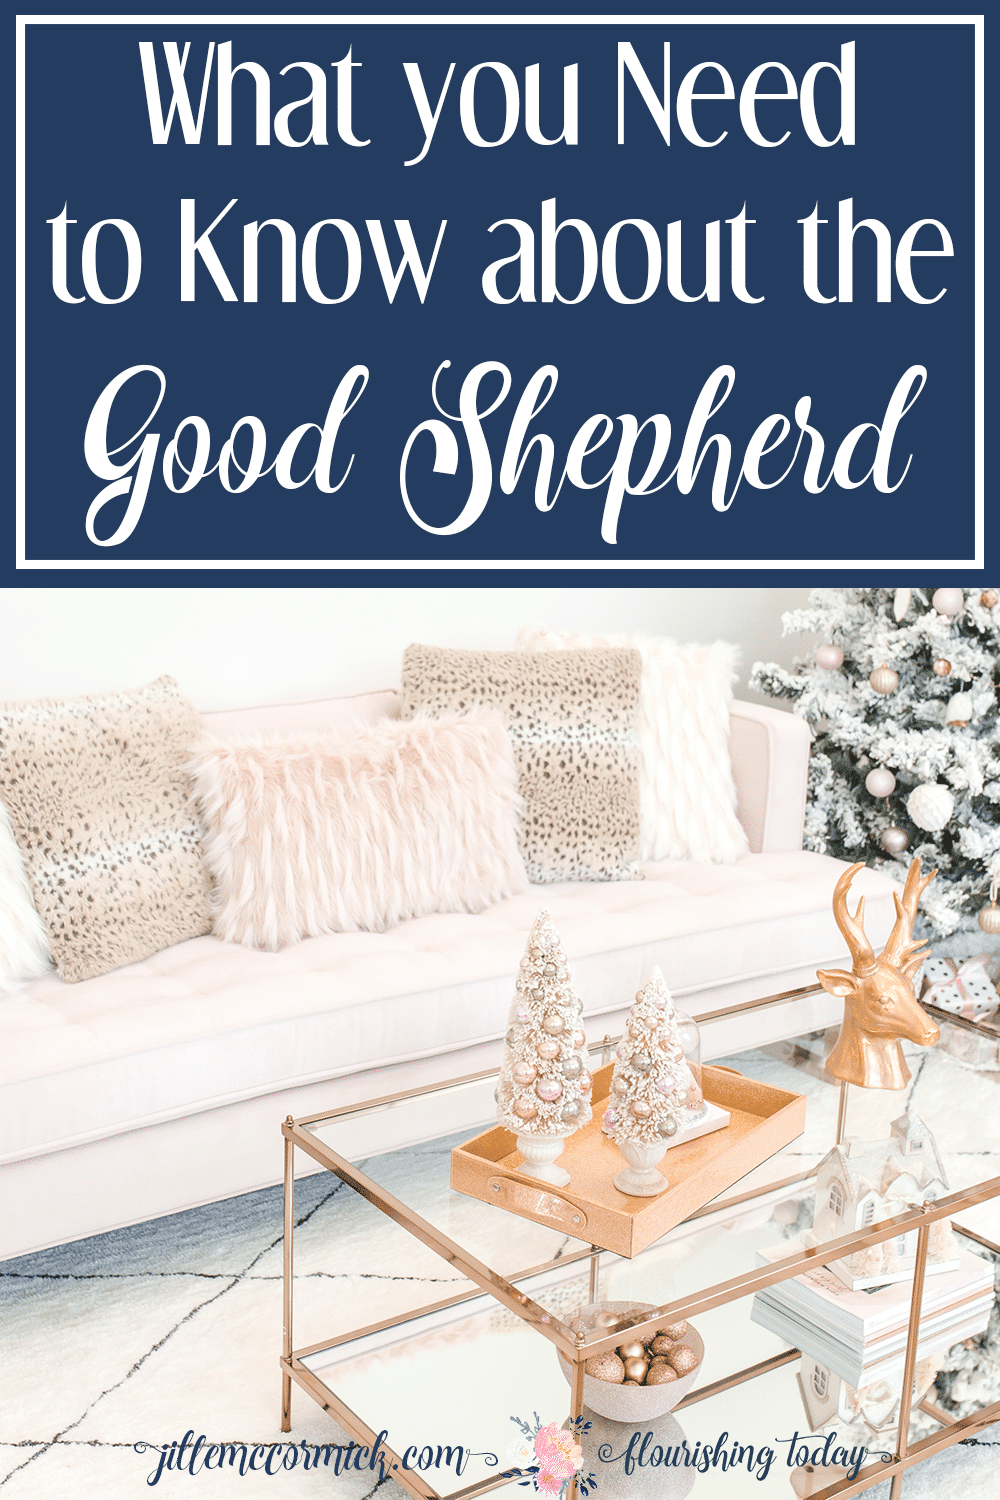 Do you know Jesus the Good Shepherd? What better way to celebrate Christmas than to get to know Him. Here's 3 things you should know about the Good Shepherd